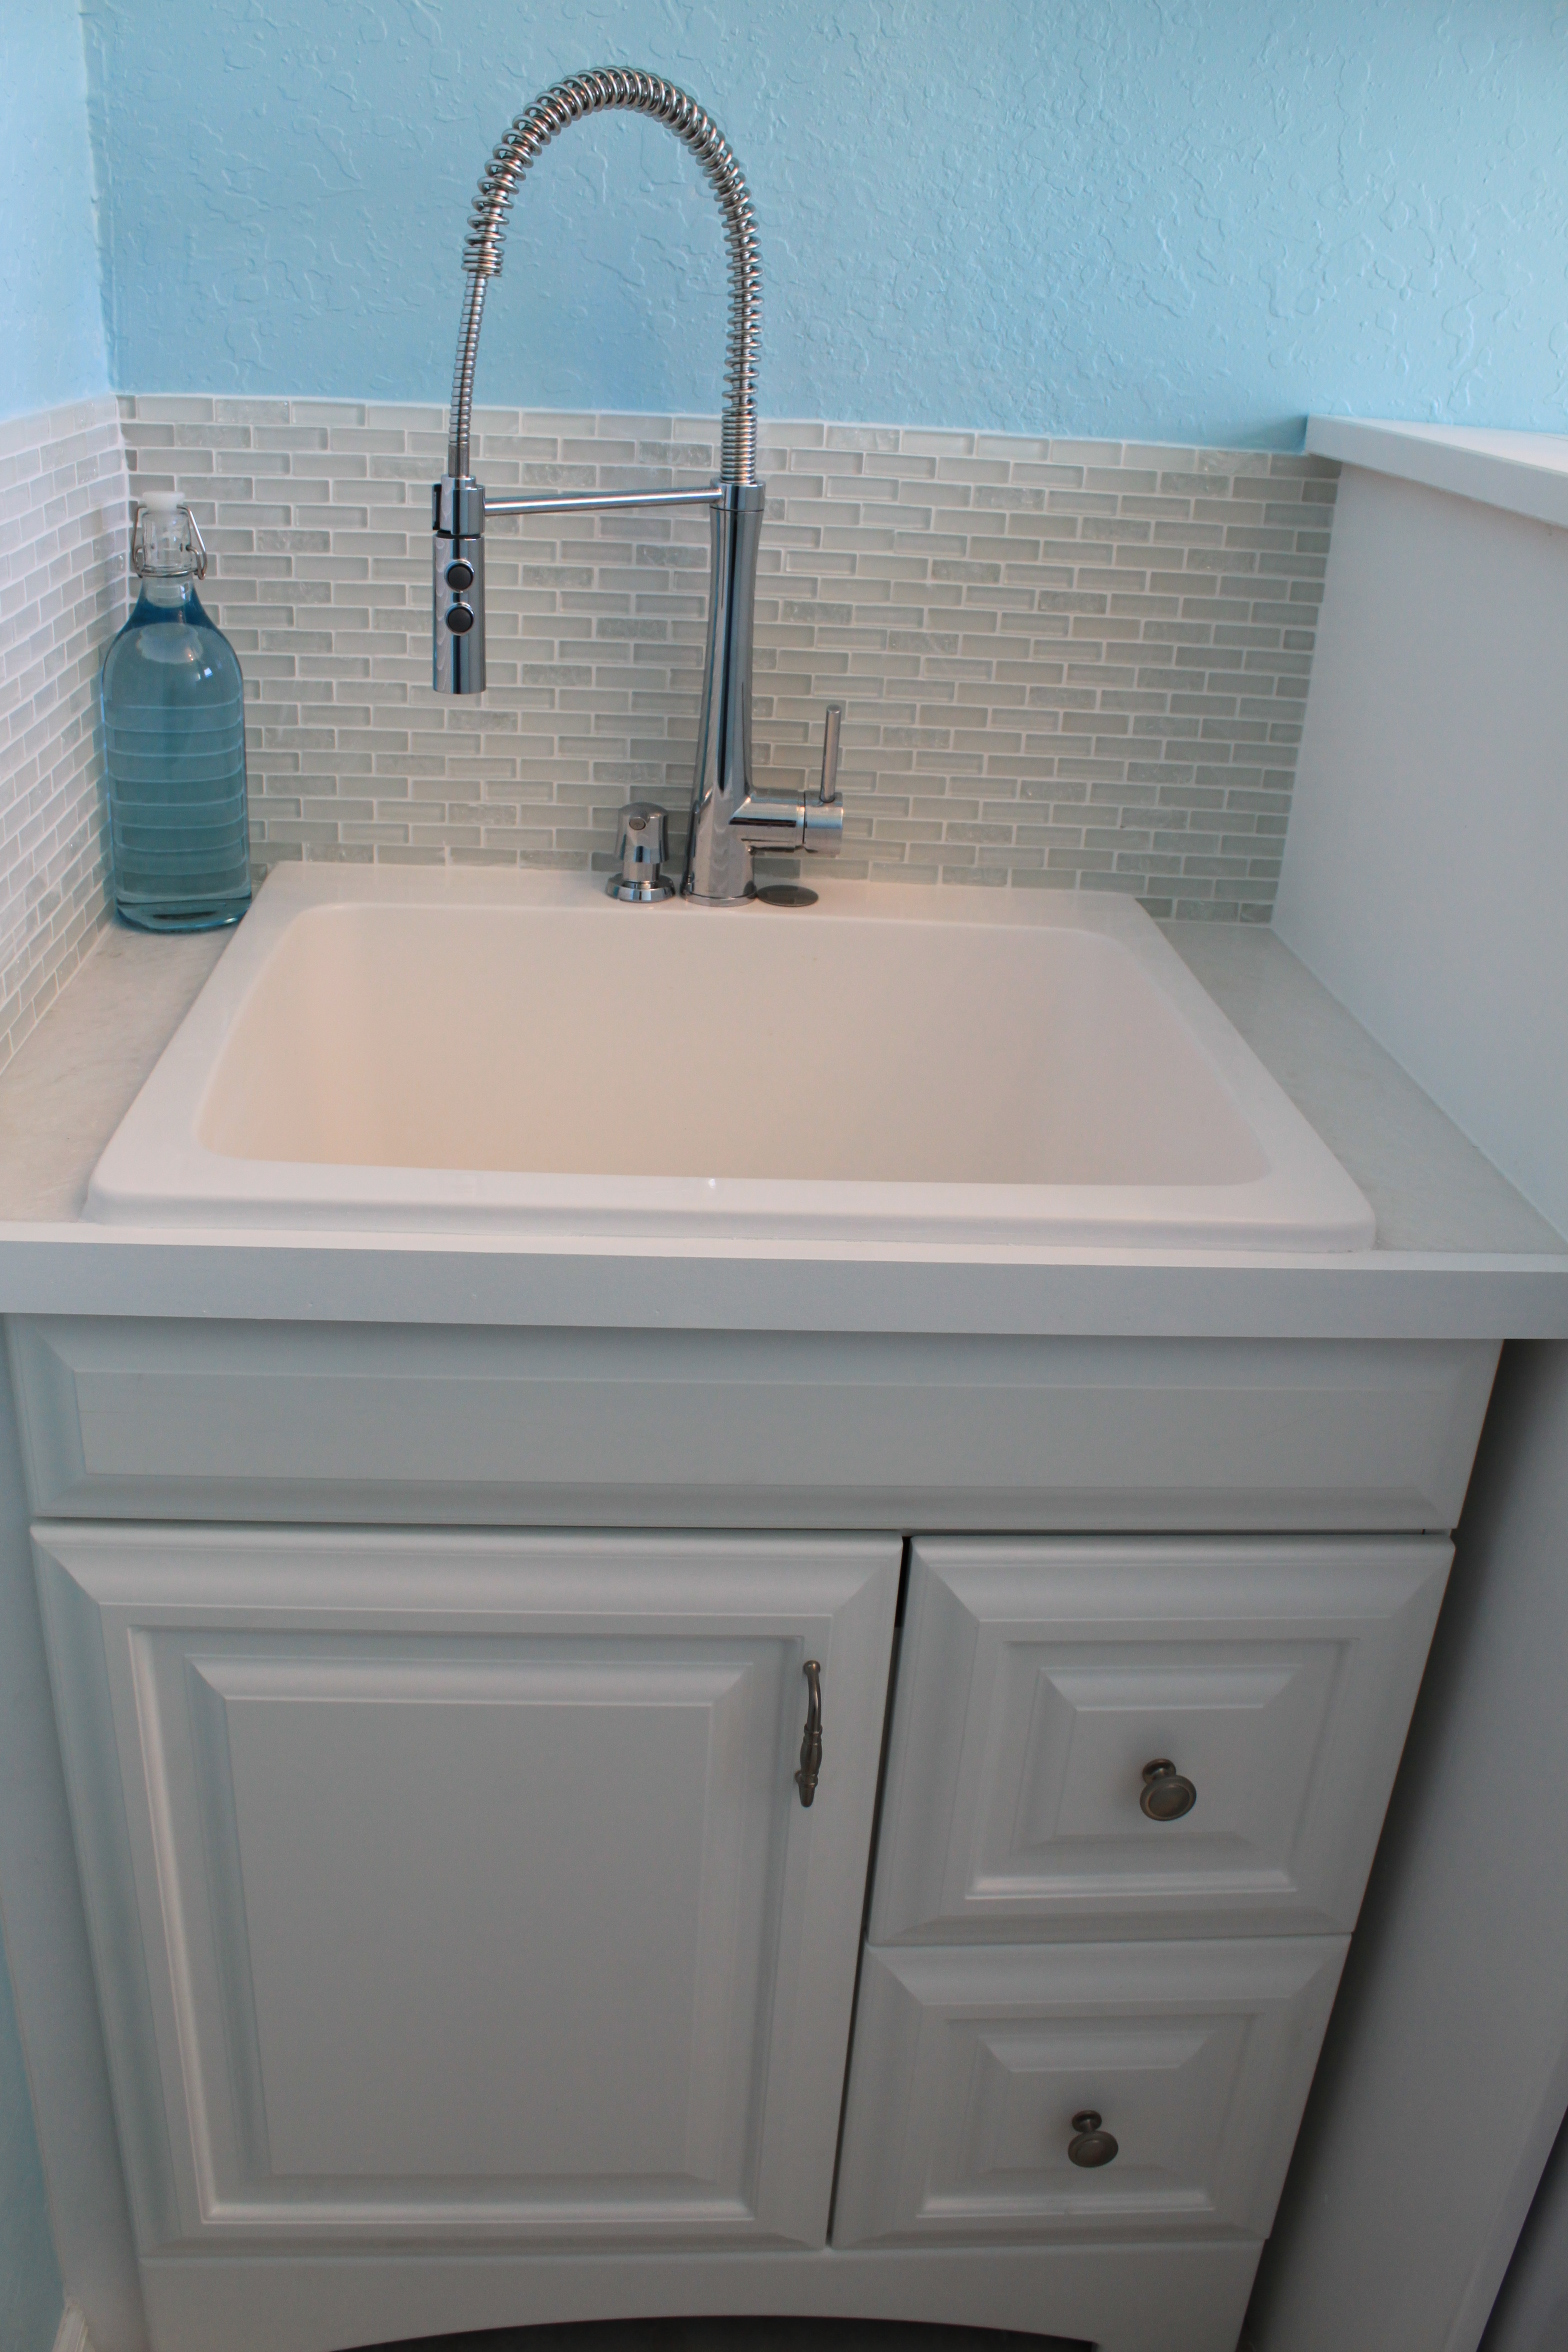 laundry sink with faucet and tile backsplash - Utility Sink Backsplash